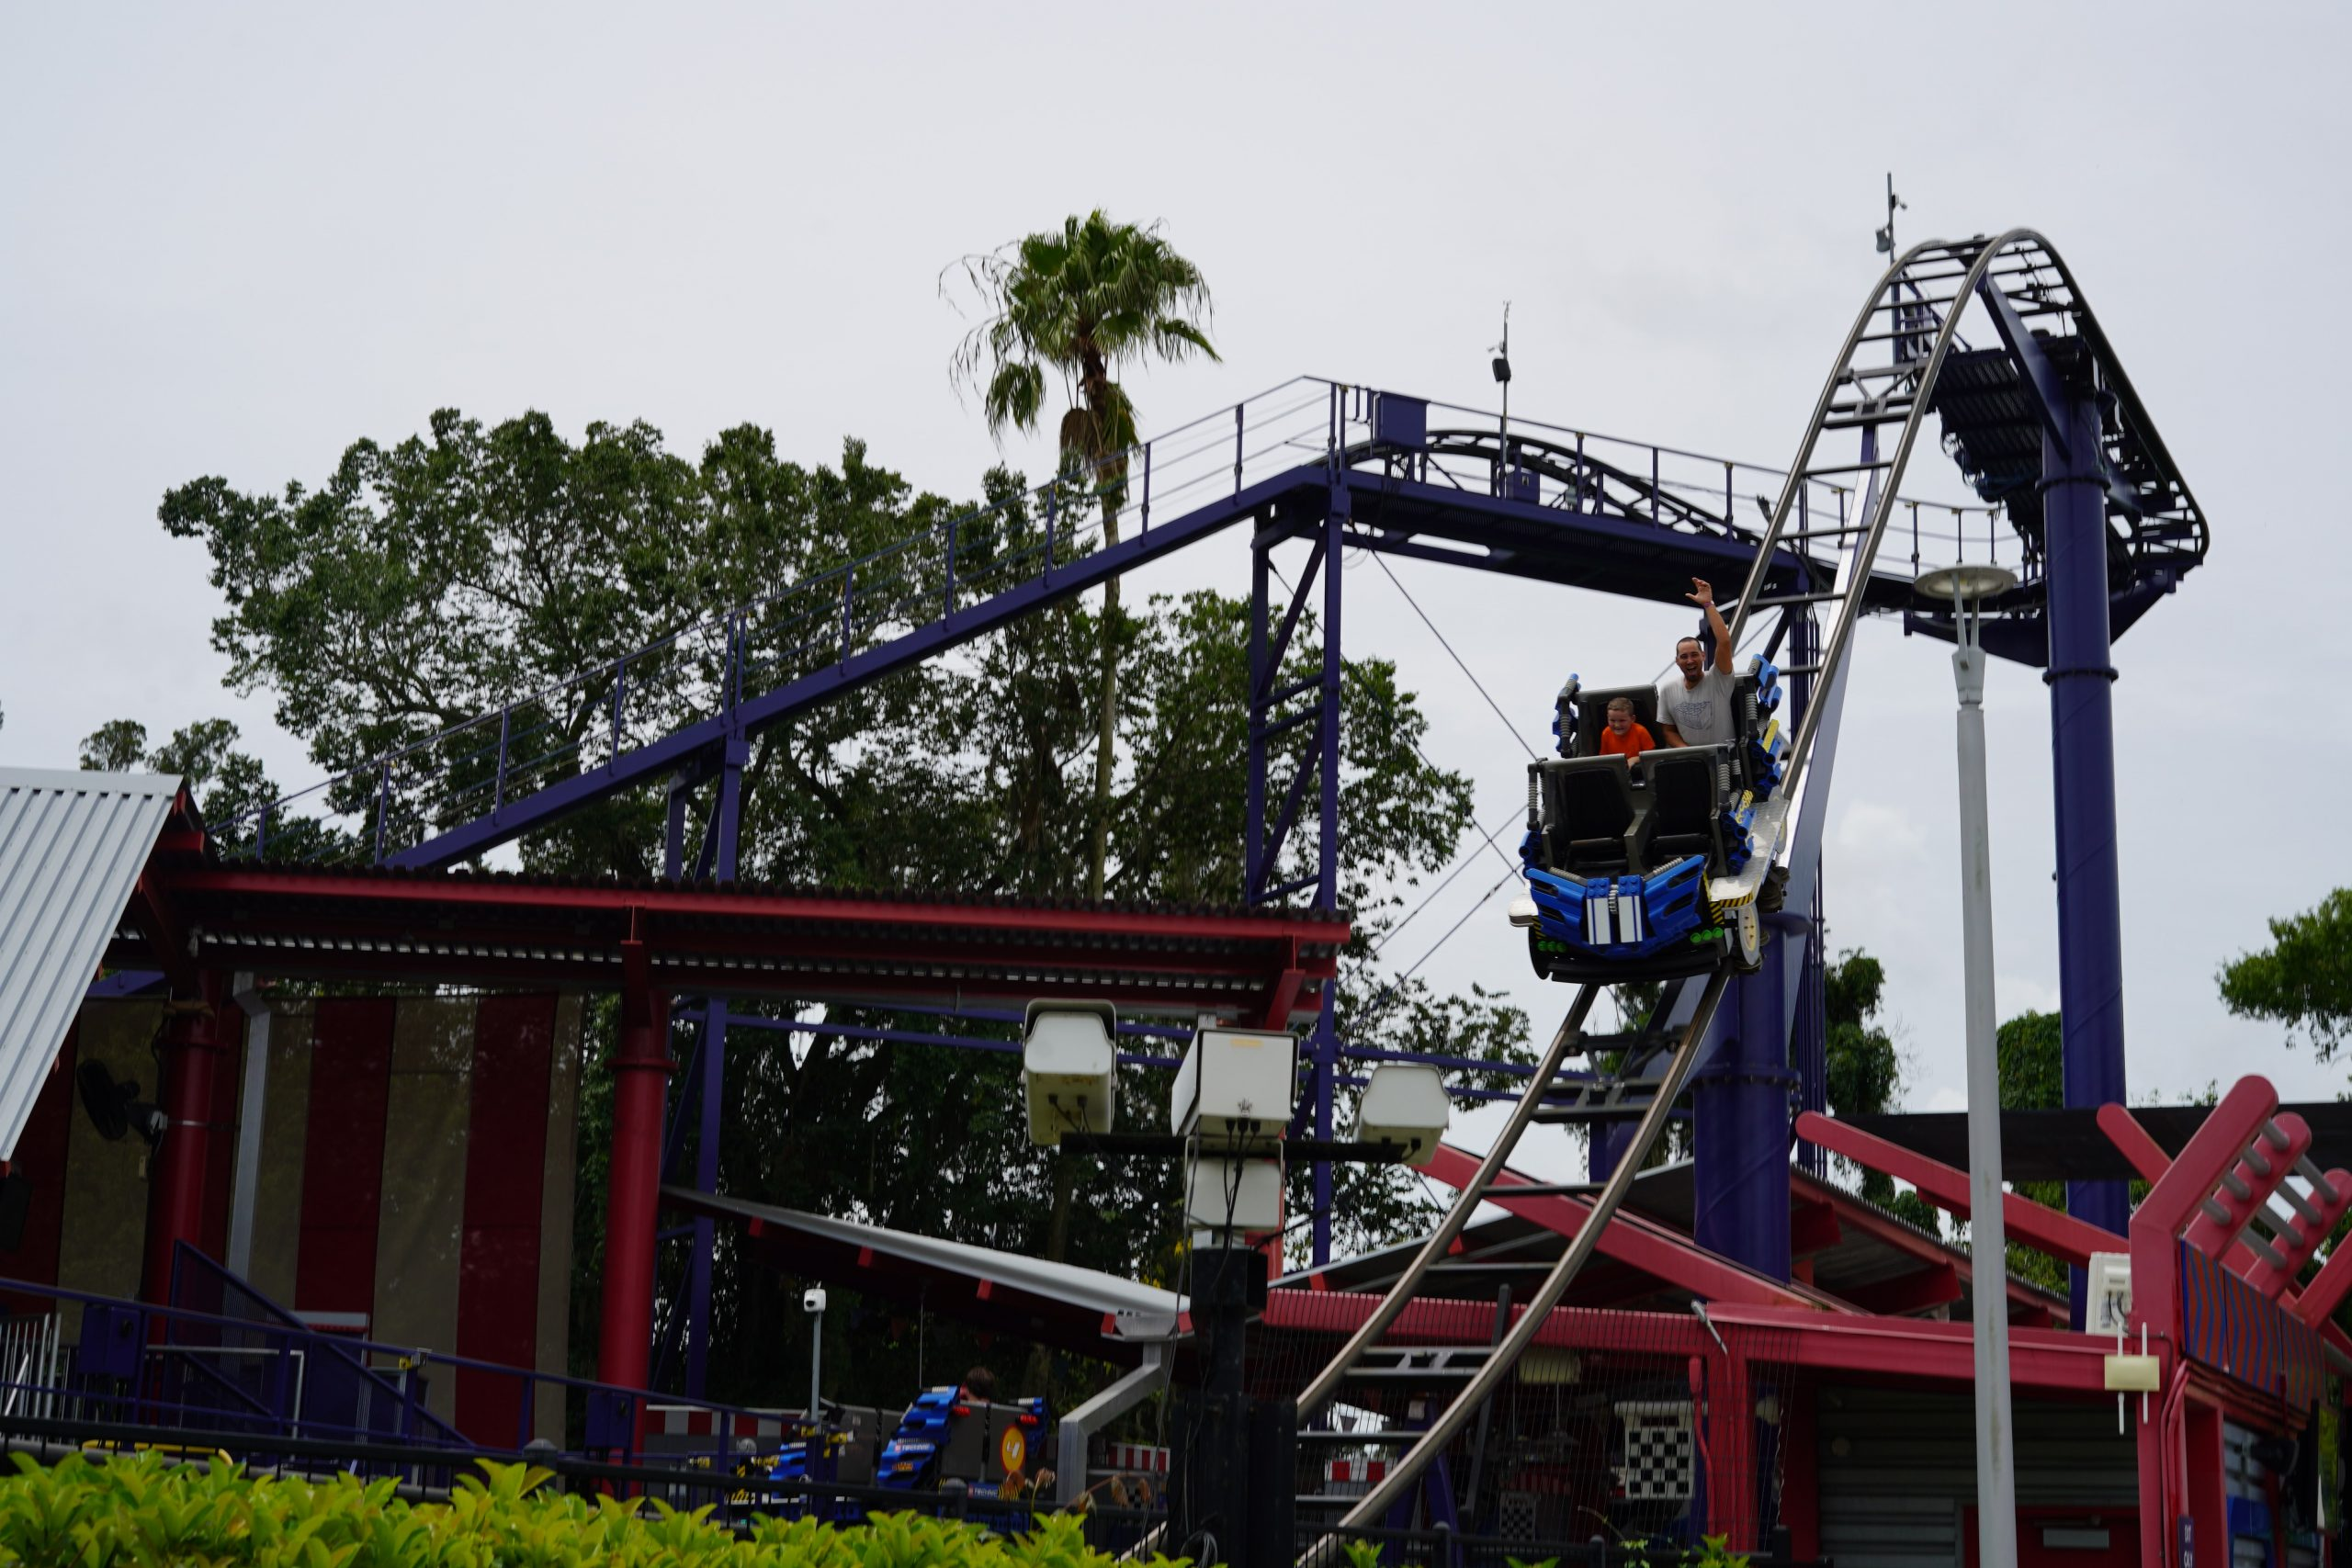 People riding a rollercoaster called Technic at LEGOLAND. | Guide to LEGOLAND Florida